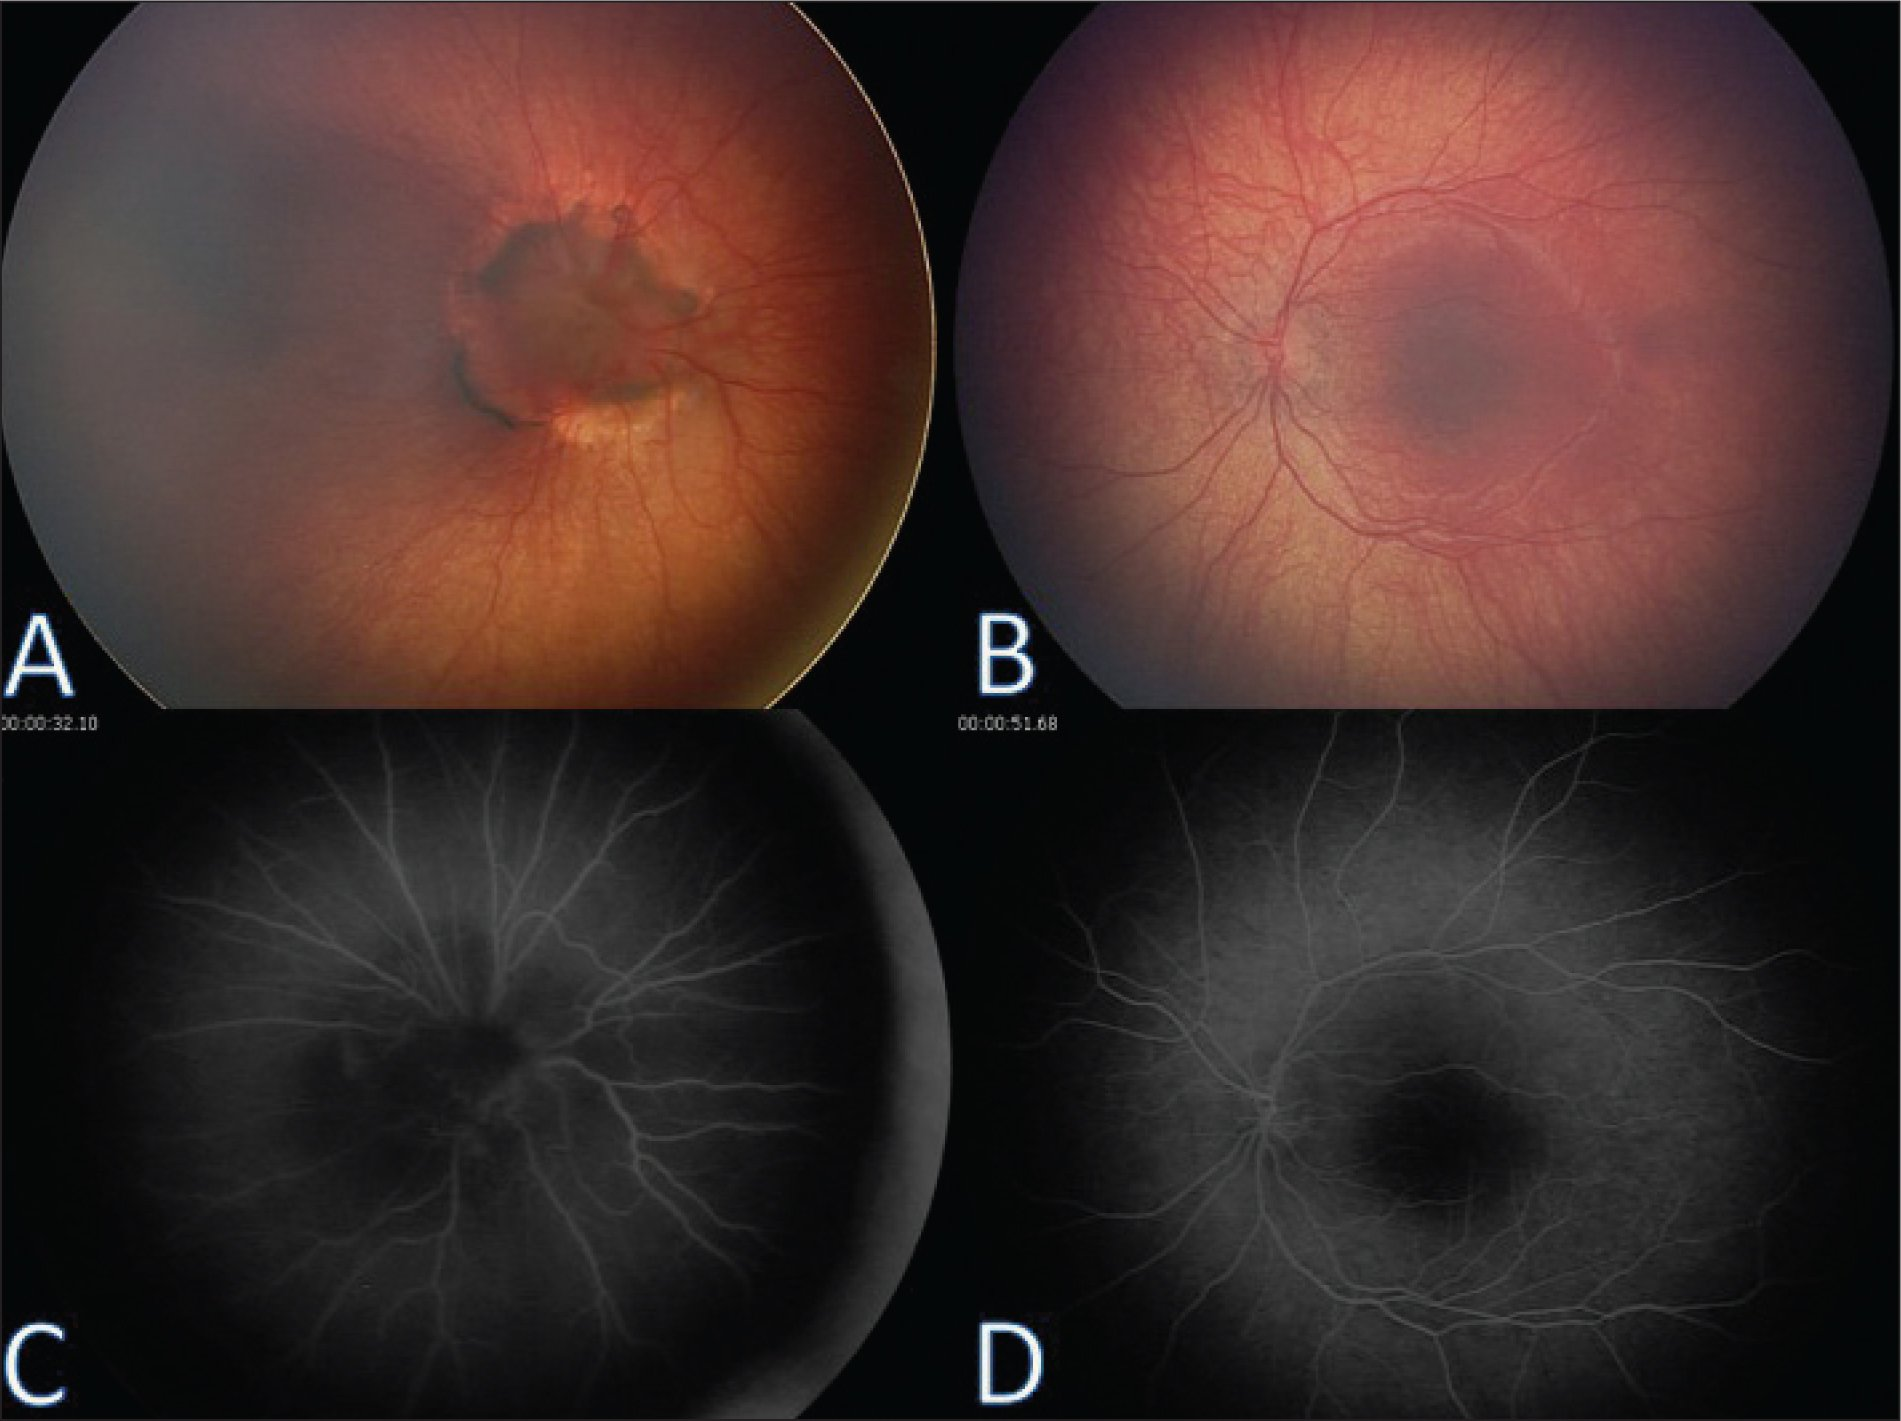 Funduscopic and fluorescein angiography of the right and left eyes. (A) Morning glory disc anomaly in the right eye with enlarged optic disc, prepapillary gliosis, and radially emanating vessels with circumpapillary hyperpigmentation and retinal pigment epithelium atrophy. (B) The normal funduscopic findings in the left eye. (C) On fluorescein angiography the right eye demonstrated supernumerary radial vessels in linear orientation with 'spoke wheel appearance'. (D) The normal fluorescein angiogram in the left eye.